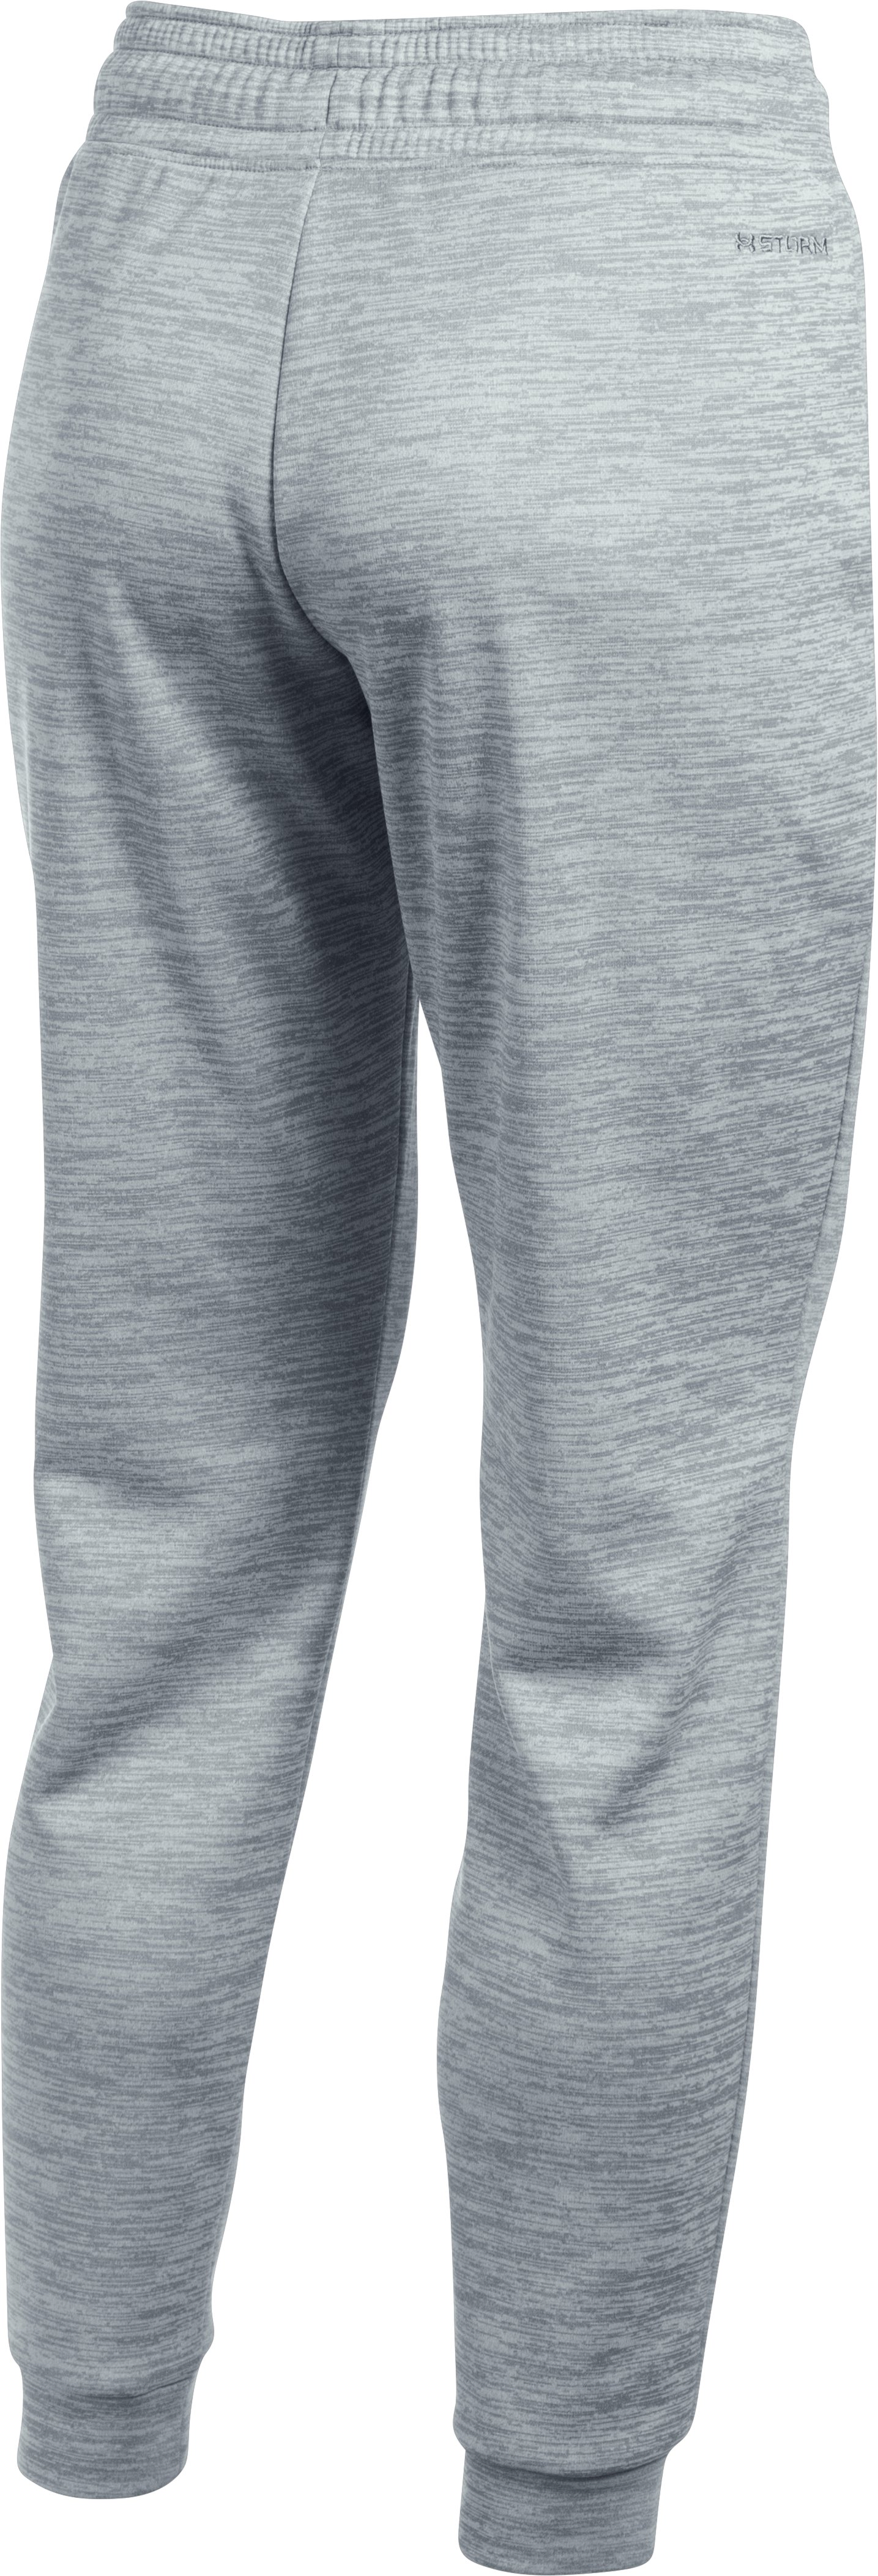 Women's  UA Storm Armour Fleece® Lightweight Joggers - Twist, Steel,